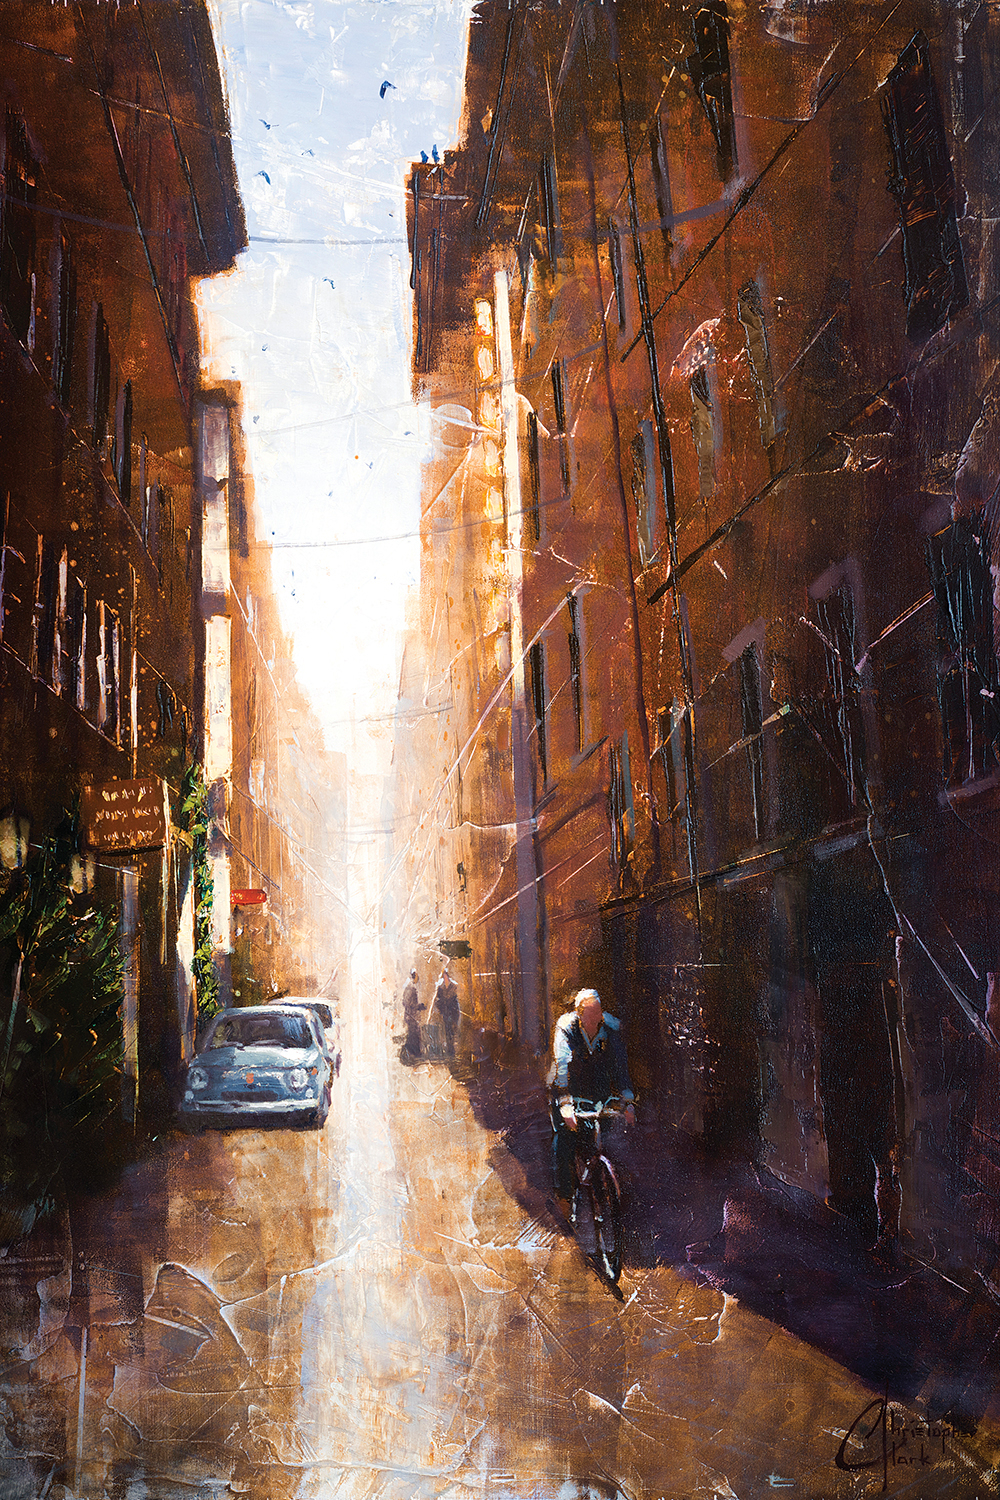 a small alley with some parked cars, a man bicycling, and some people in view with the sun bathing the alley